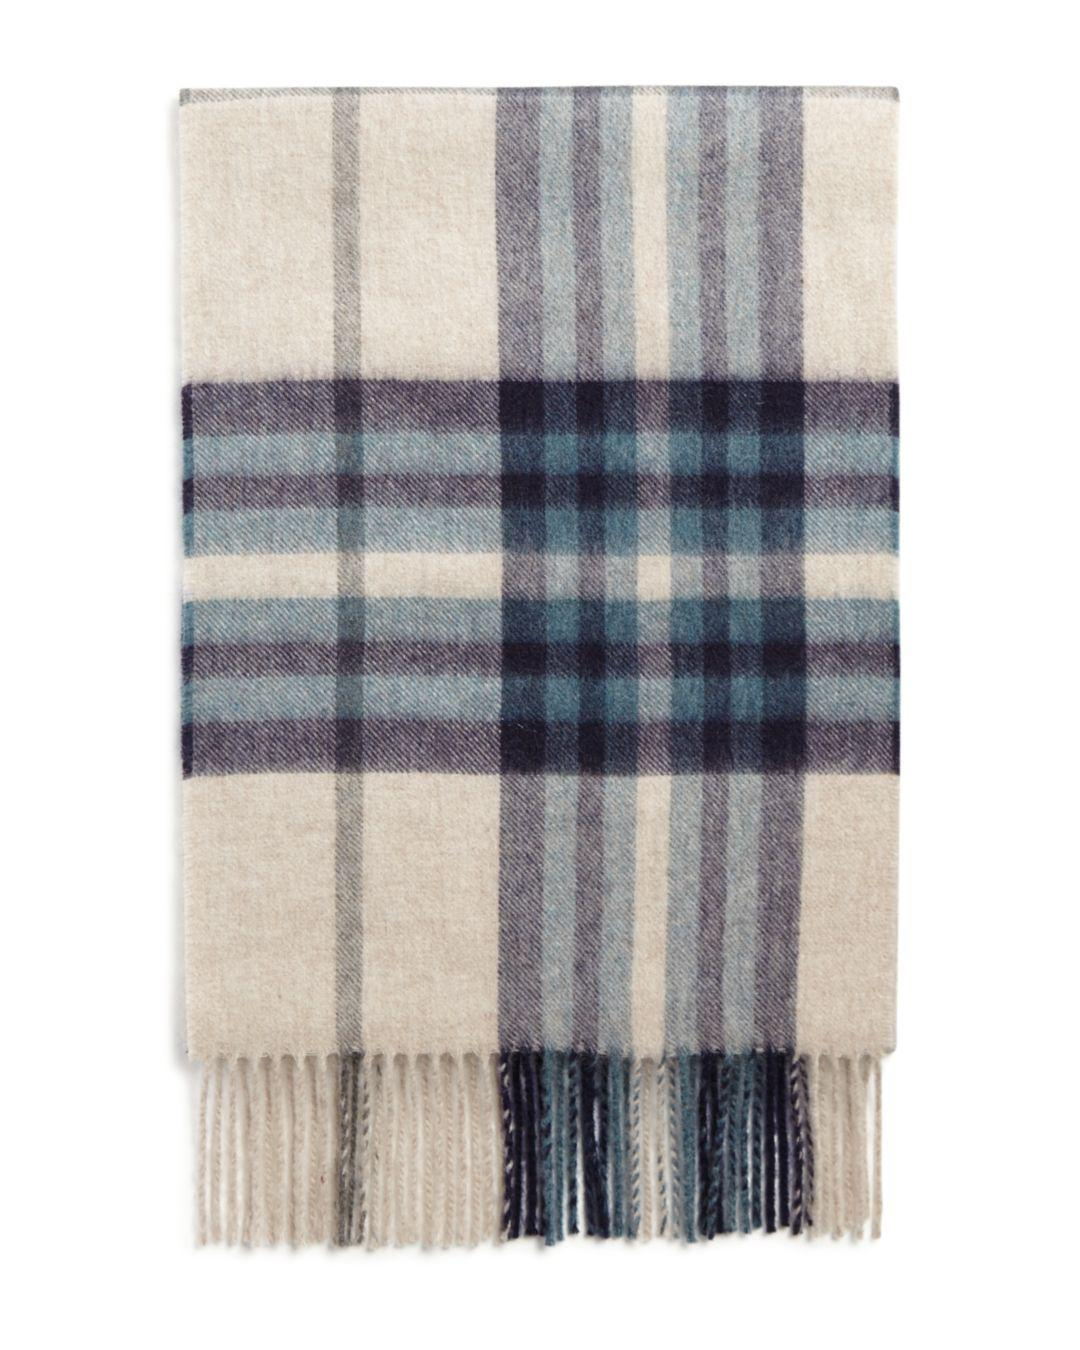 c0c97fbbaa559 Gallery. Previously sold at: Bloomingdale's · Men's Cashmere Scarves ...